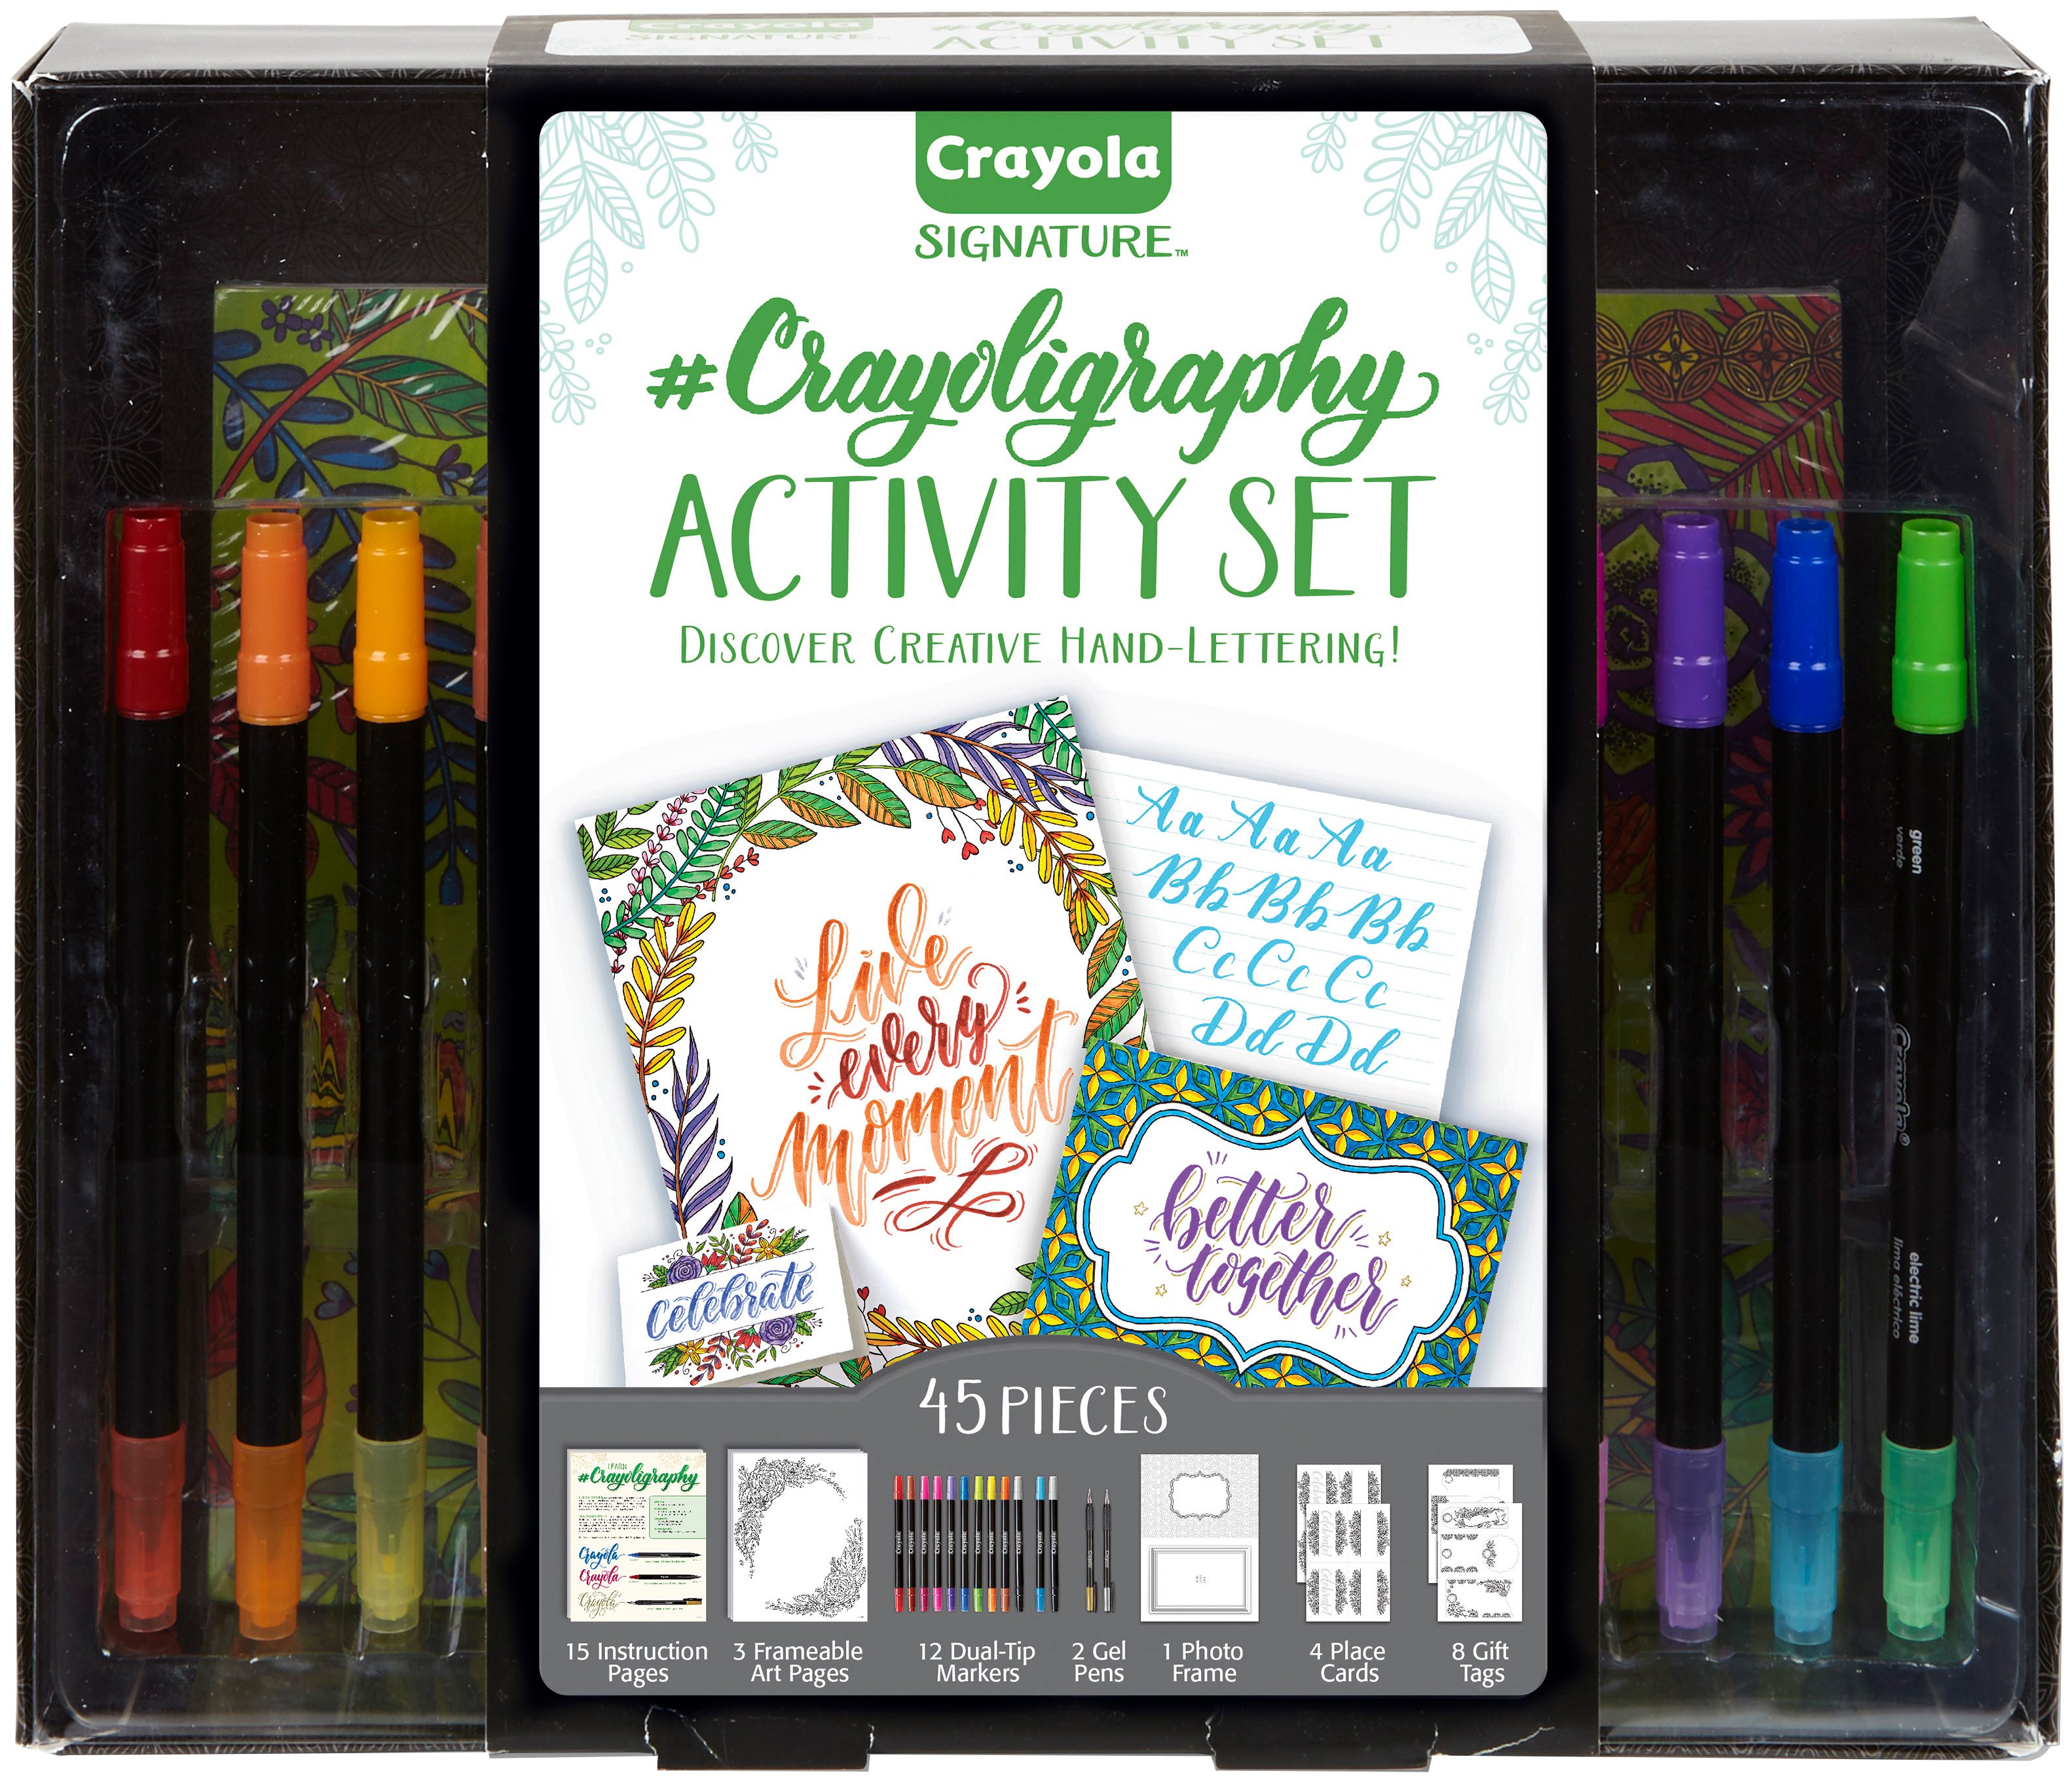 Crayola Signature Crayoligraphy Activity Set